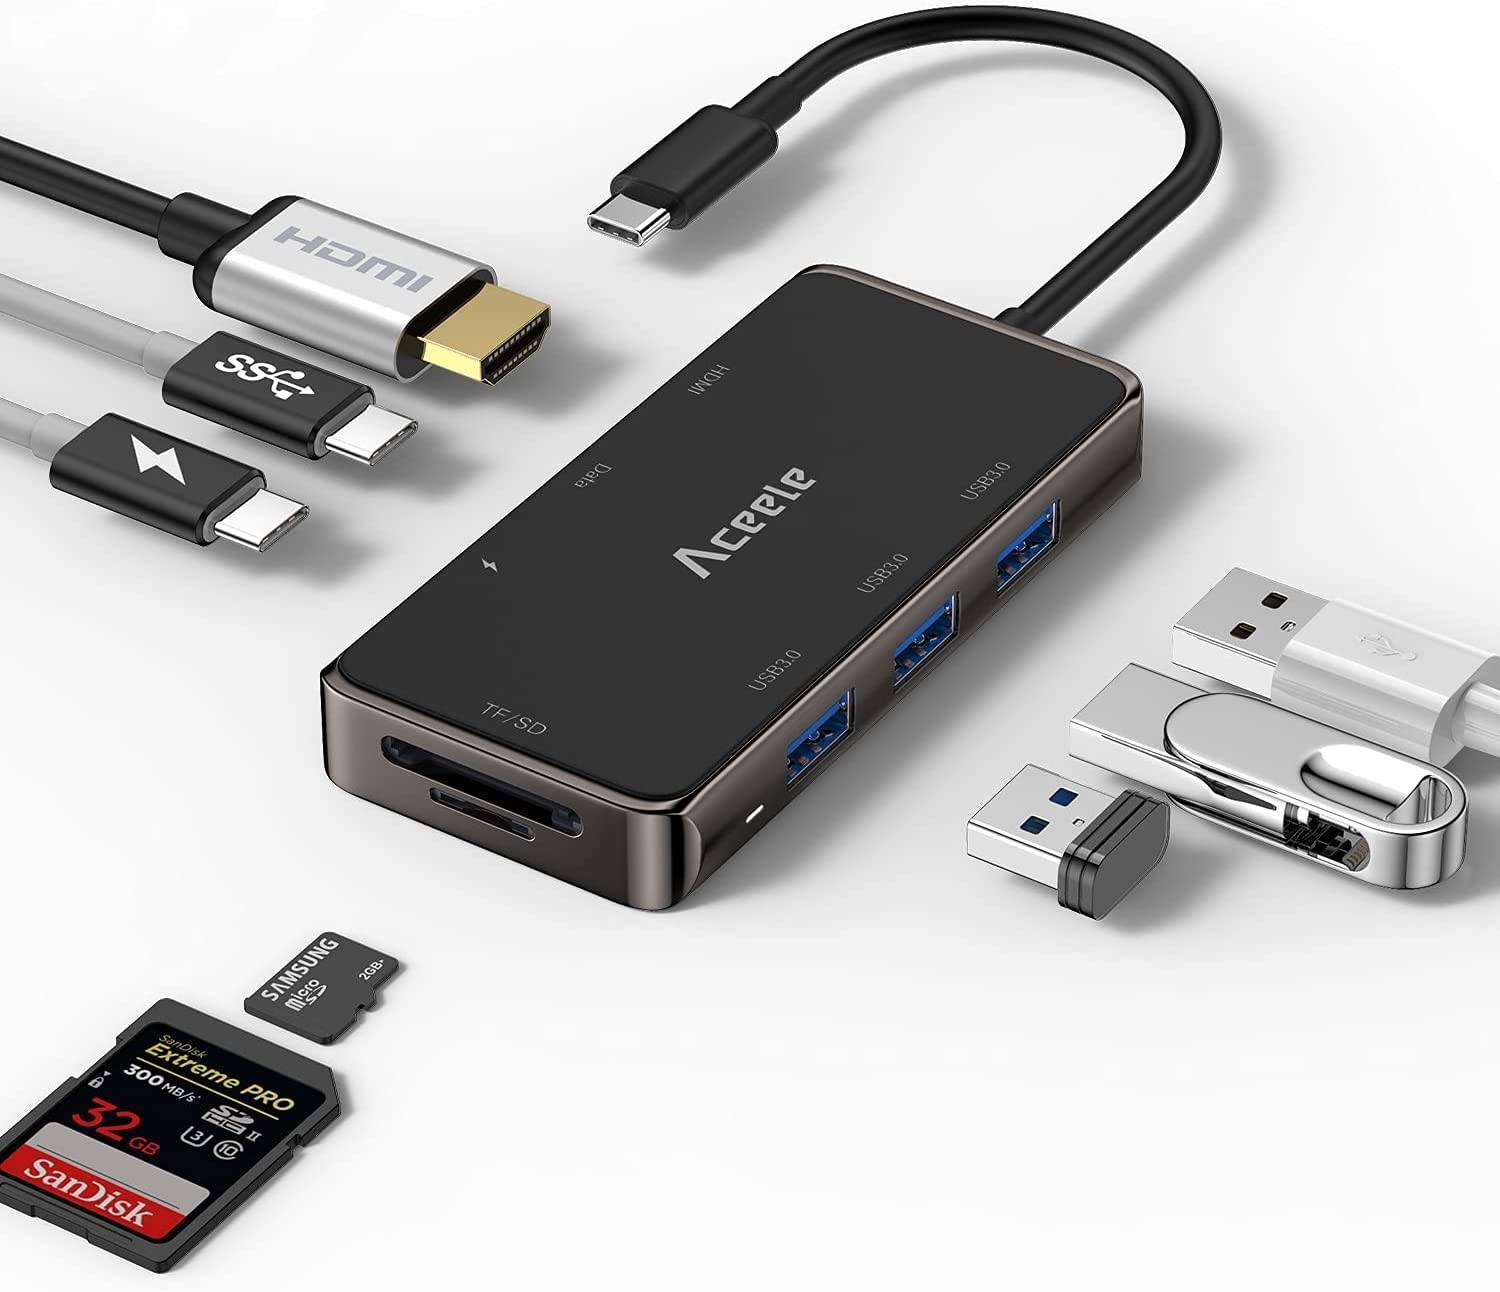 USB C Hub, USB Hub to HDMI Multiport Aceele 8 in 1 USB C Adapter with 3 USB 3.0, USB C to 4K HDMI, SD/TF Cards Reader, Dual USB C(PD&Data), Suitable for MacBook Dell XPS and More Type C Devices